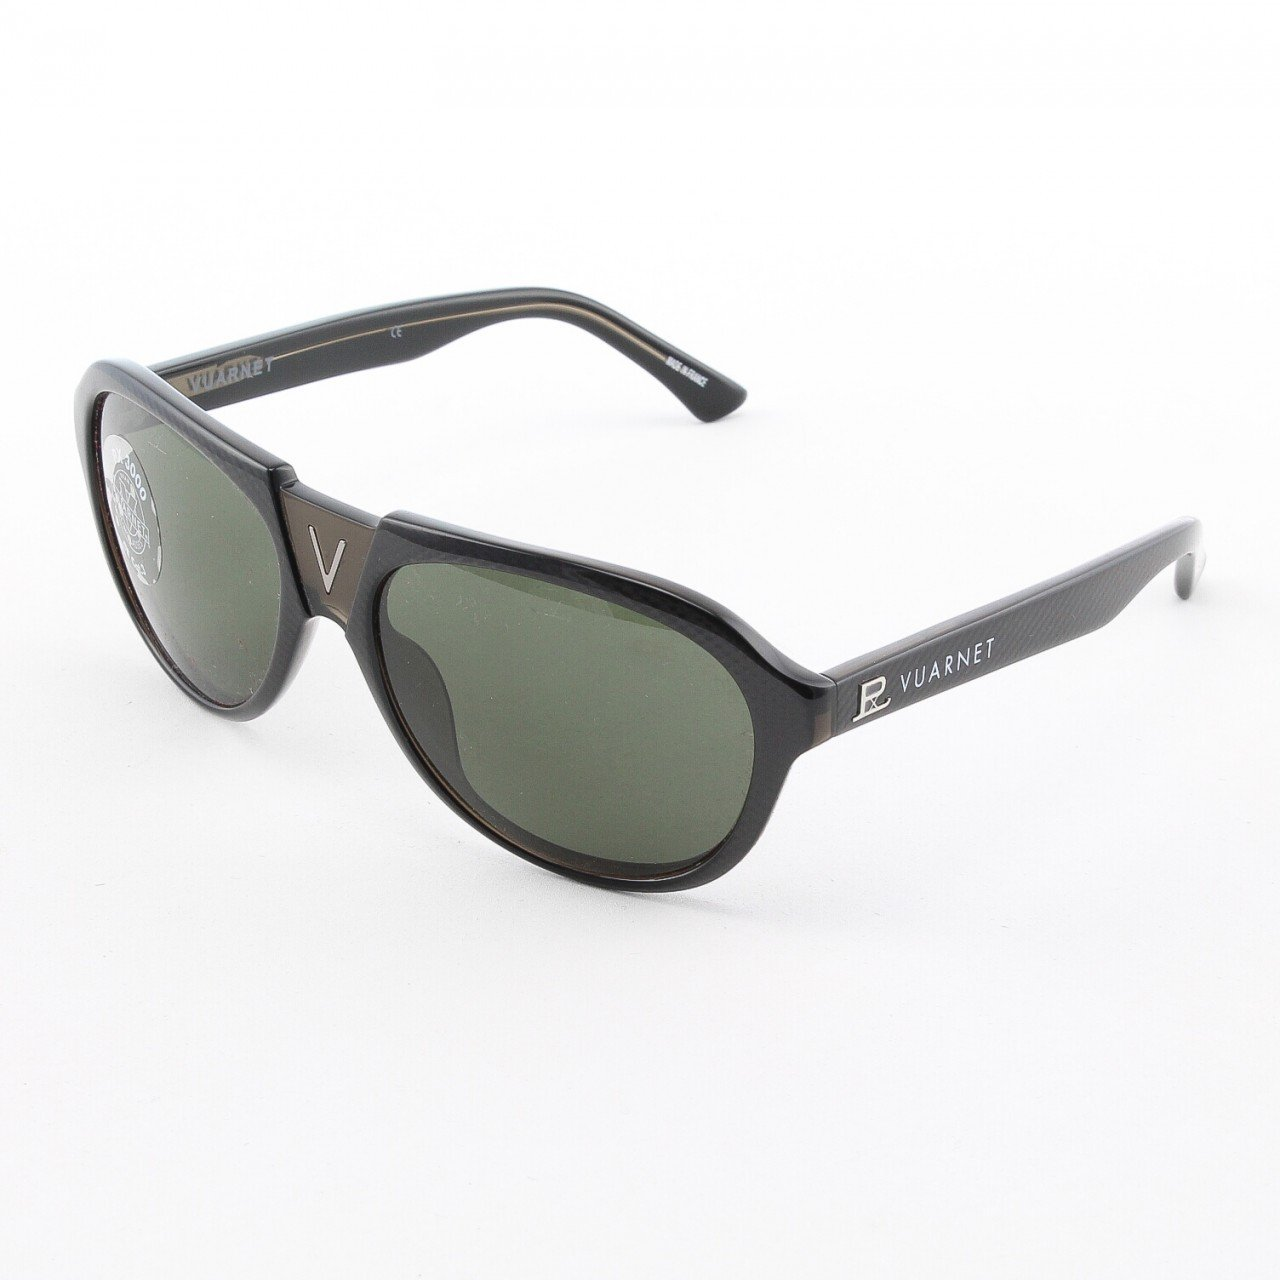 Vuarnet VL 1106 Sunglasses Col. P00P 1121 Black and Brown with Gray PX3000 Lenses